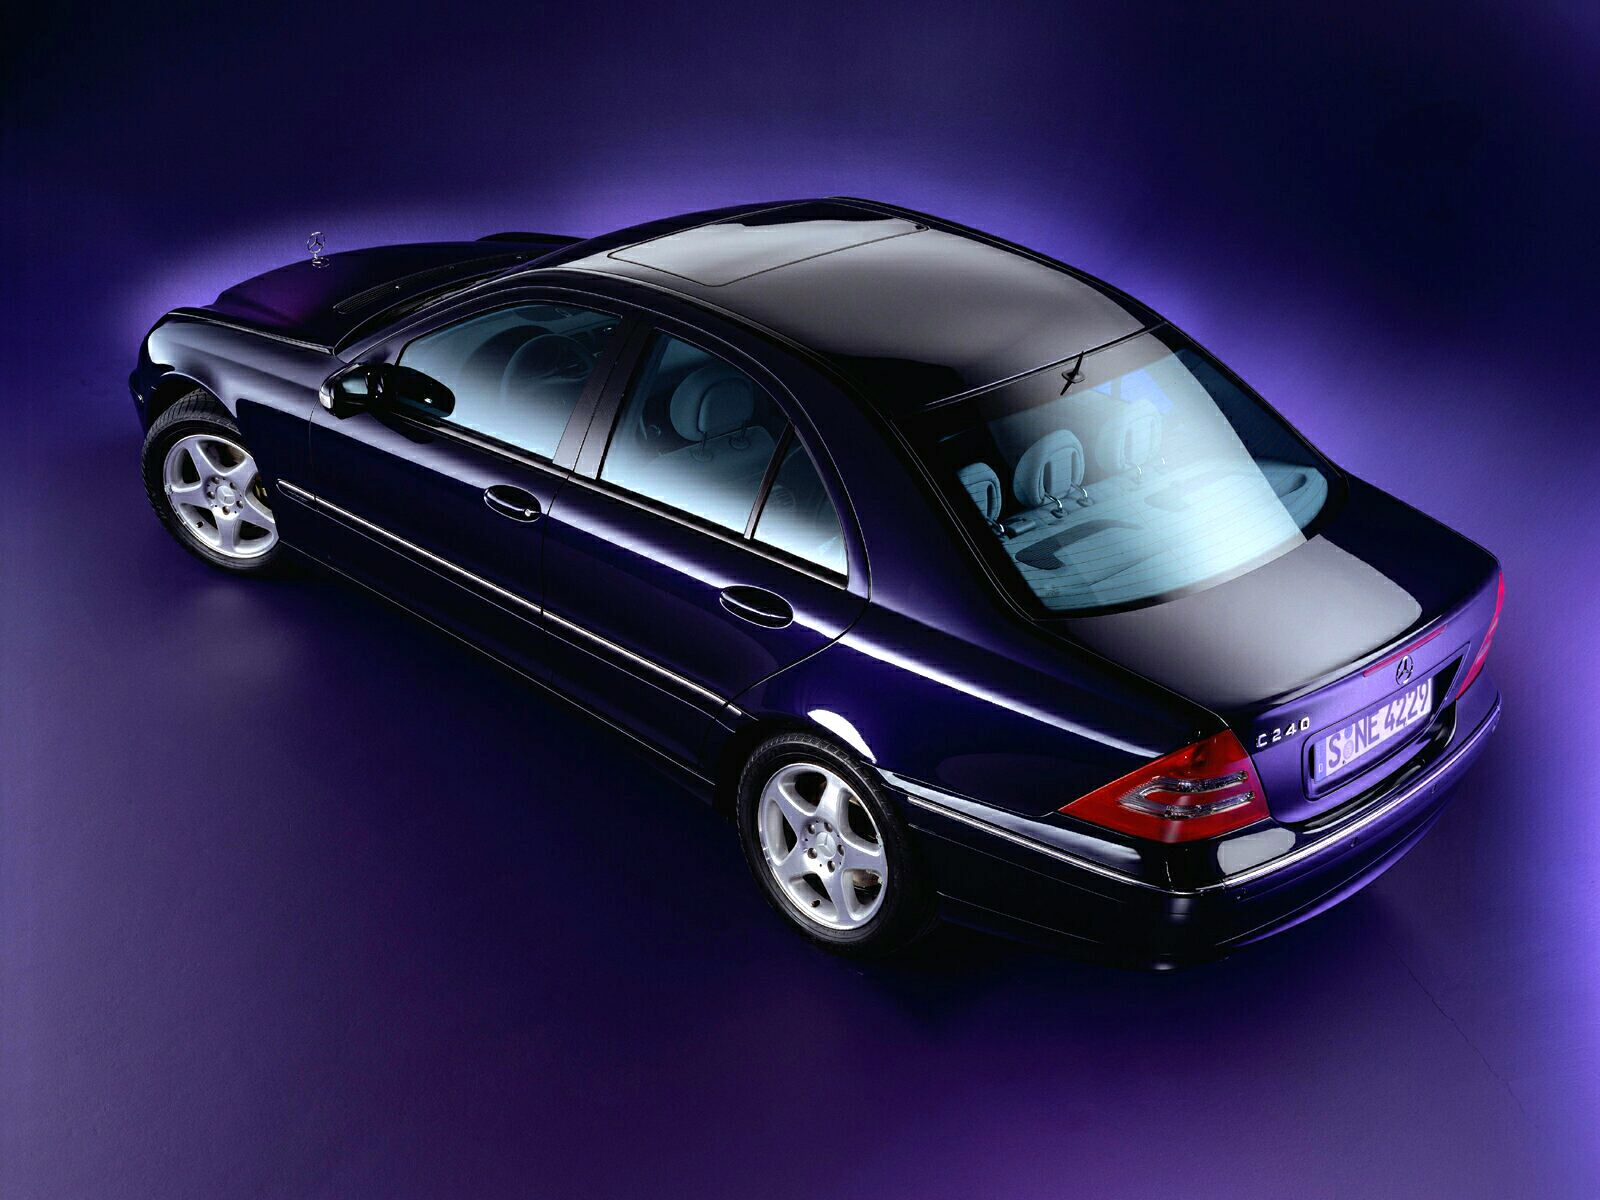 Mercedes-Benz C-Class W203 photo 10906